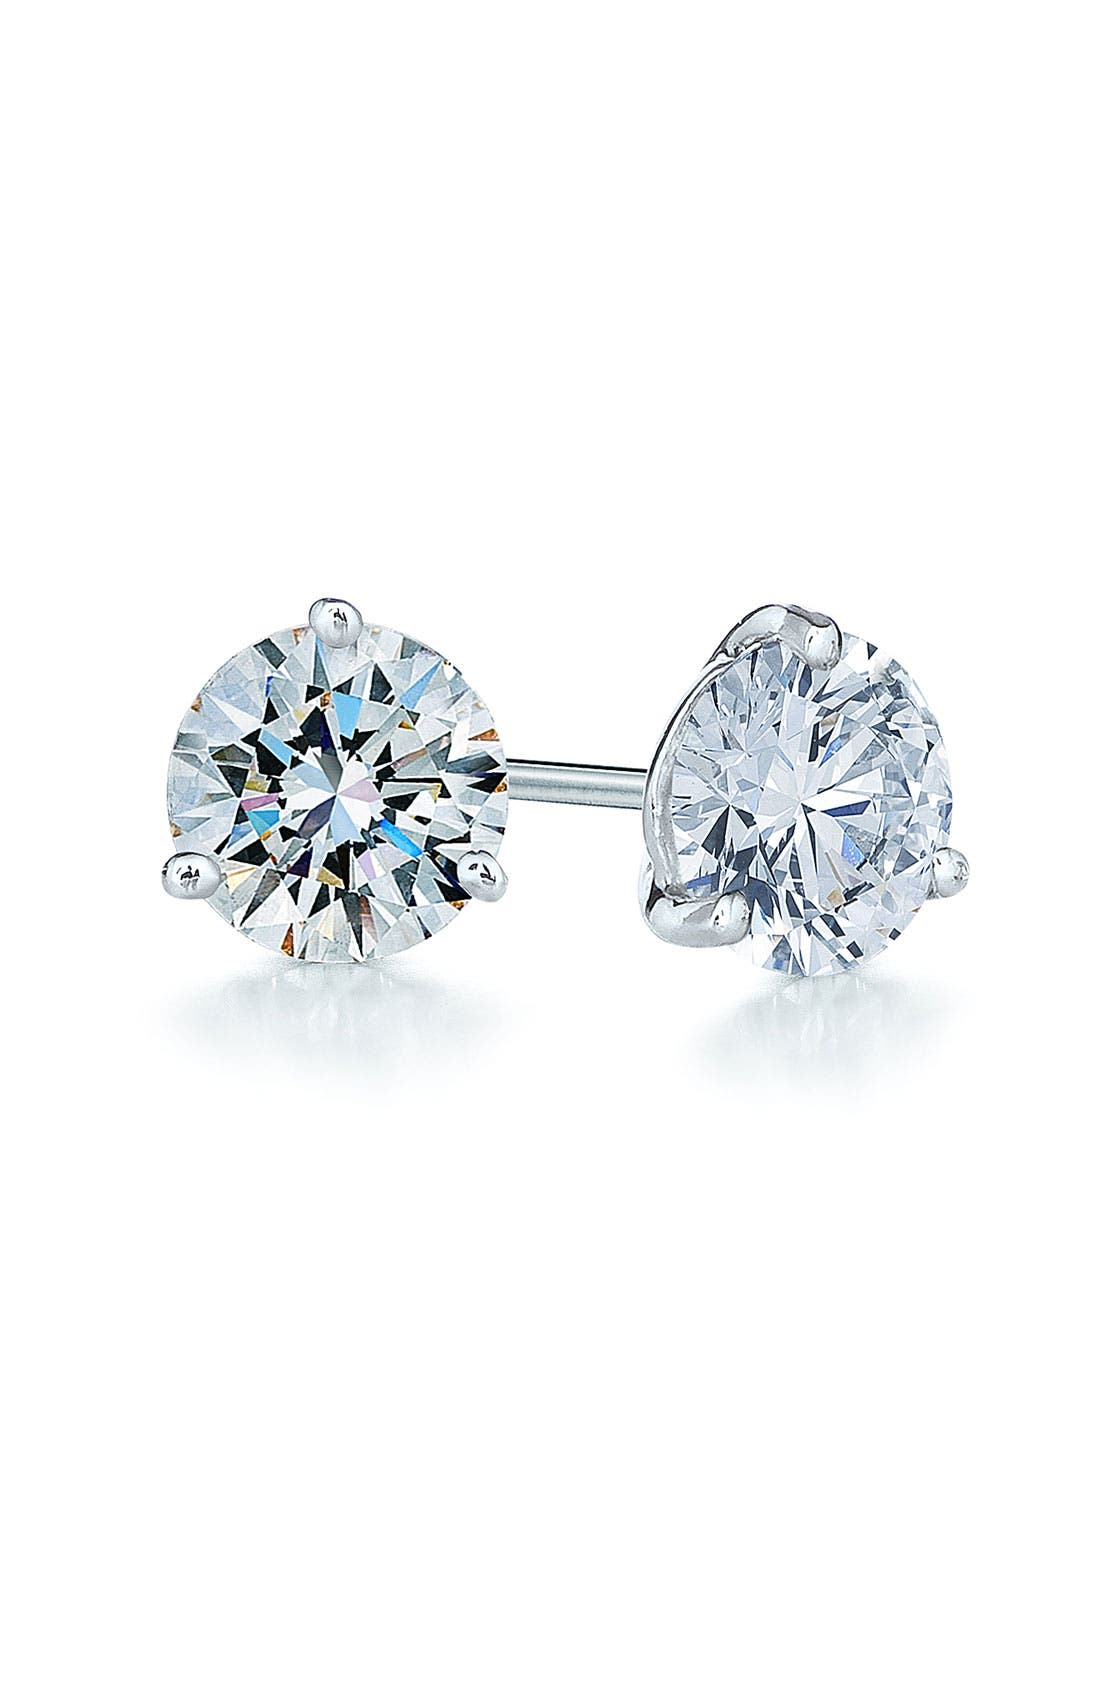 Kwiat 1.25ct tw Diamond & Platinum Stud Earrings